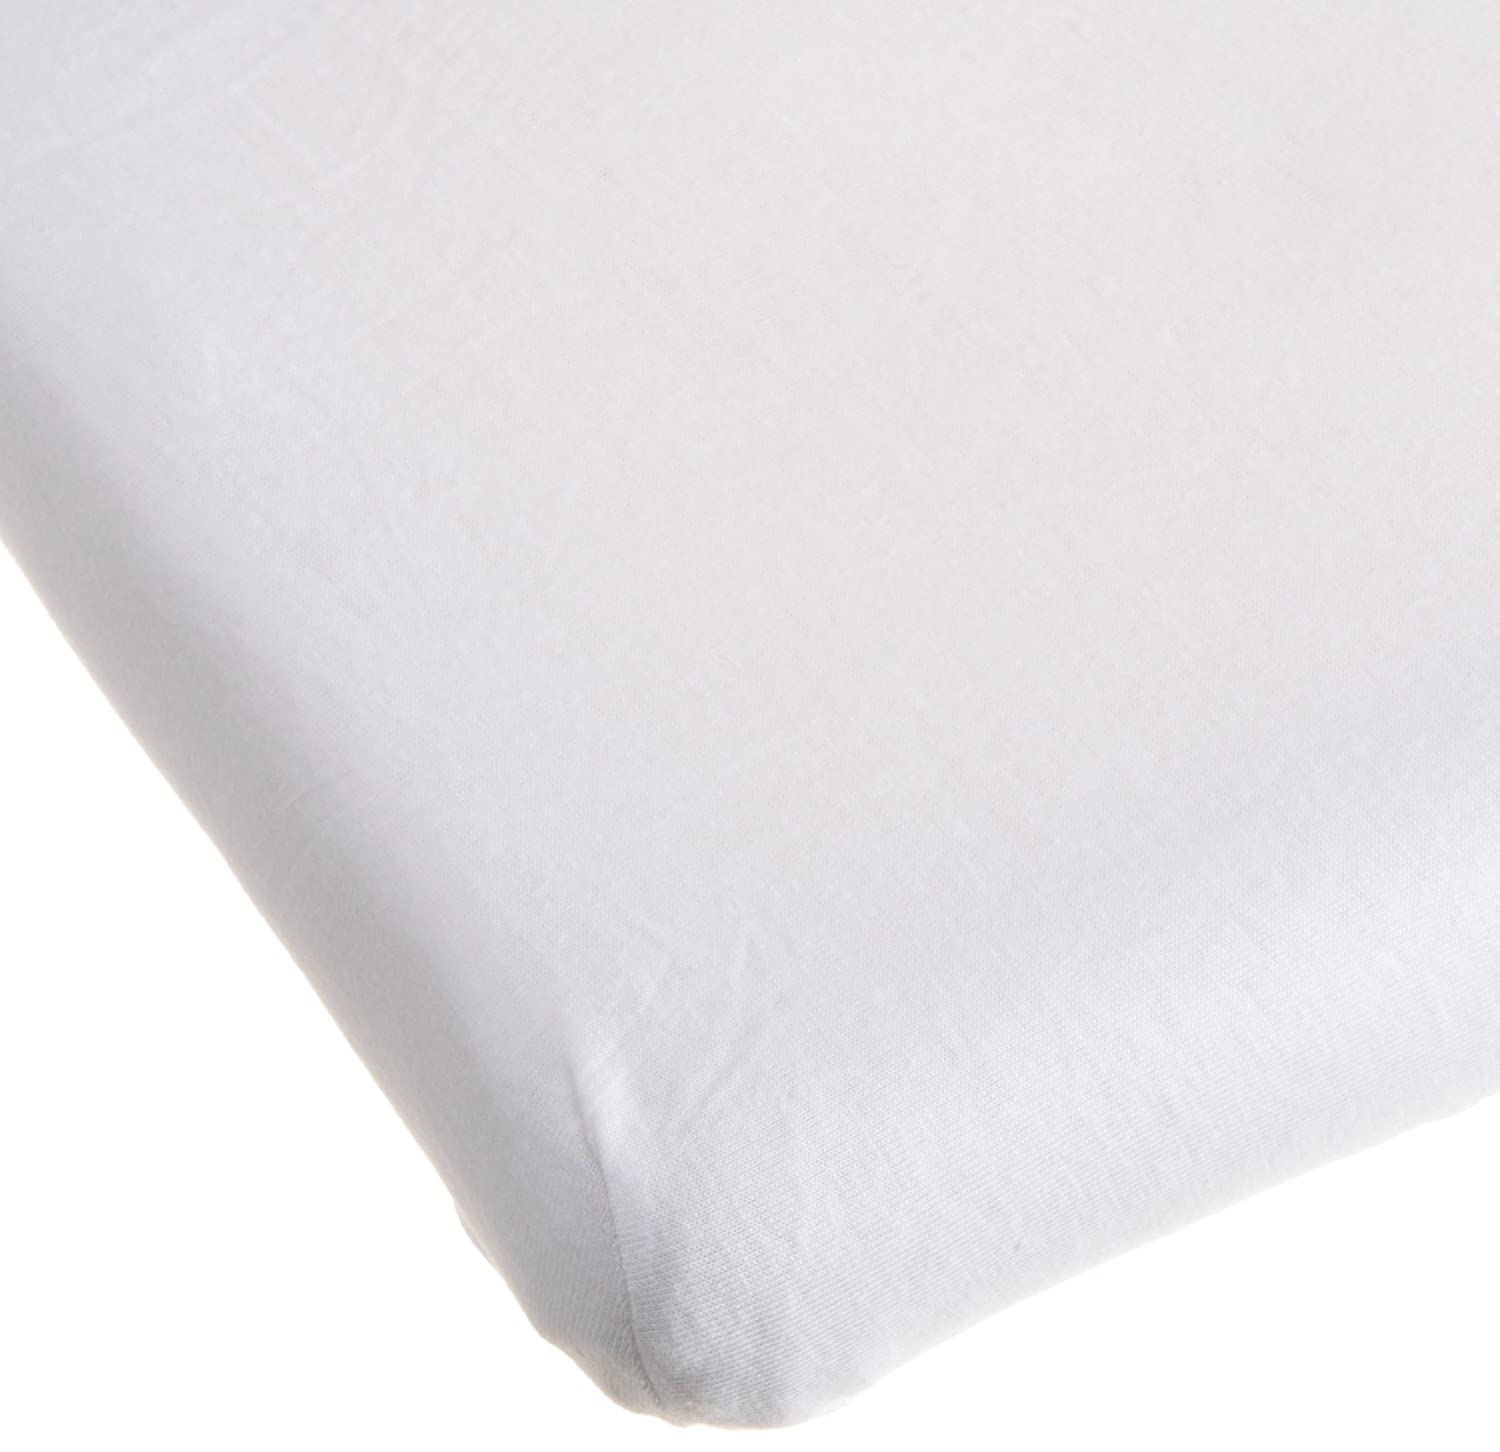 Carters Easy Fit Jersey Cradle Fitted Sheet, White (Discontinued by Manufacturer) Kids Line C119CFS For-B001CWKC7G-xs